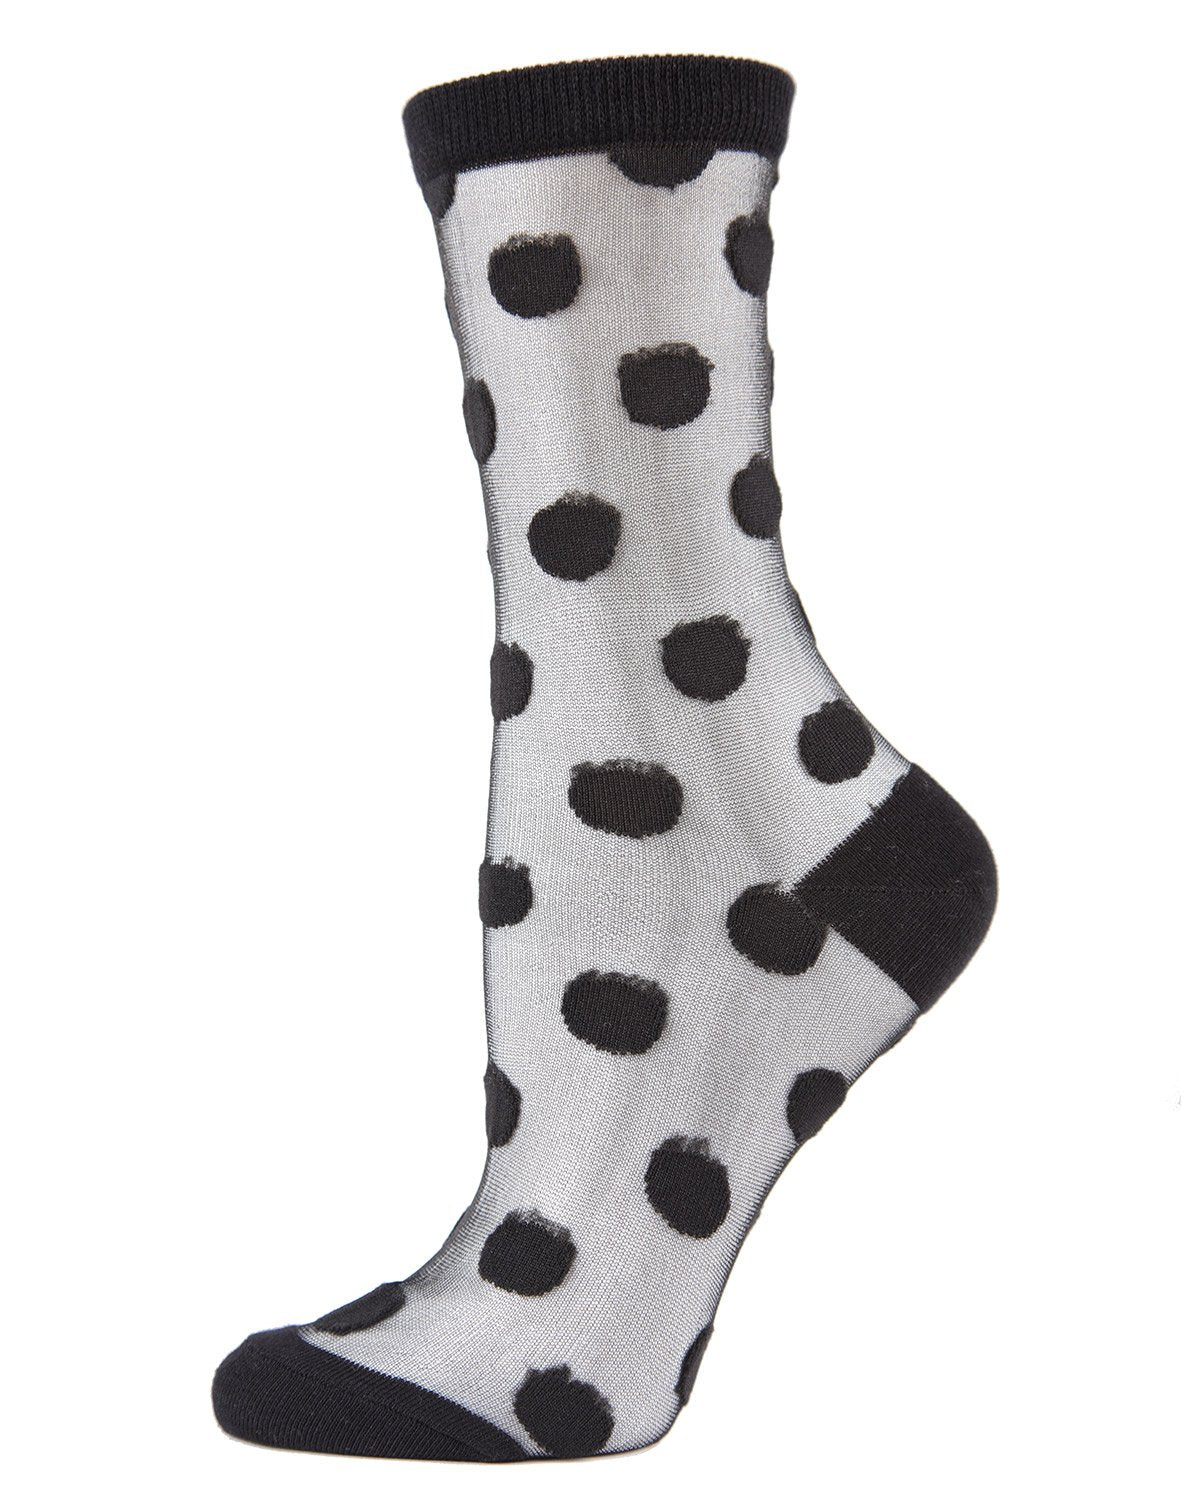 See Through Polka Dot Socks